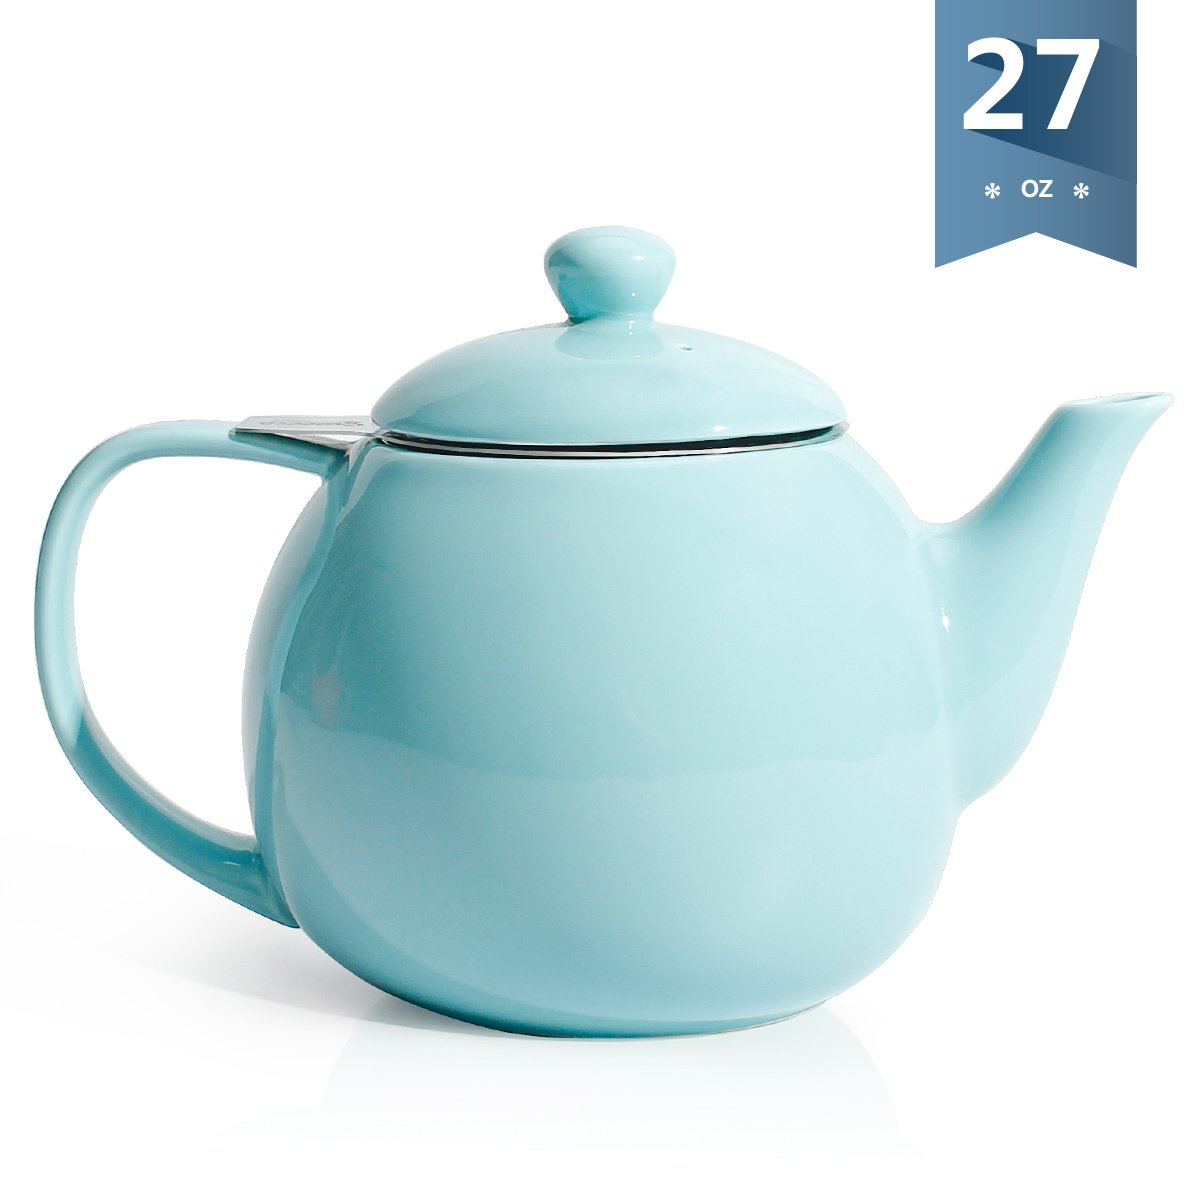 Sweese 2309 Teapot 27 ounce Blooming /& Loose Leaf Teapot Porcelain Tea Pot with Stainless Steel Infuser Red